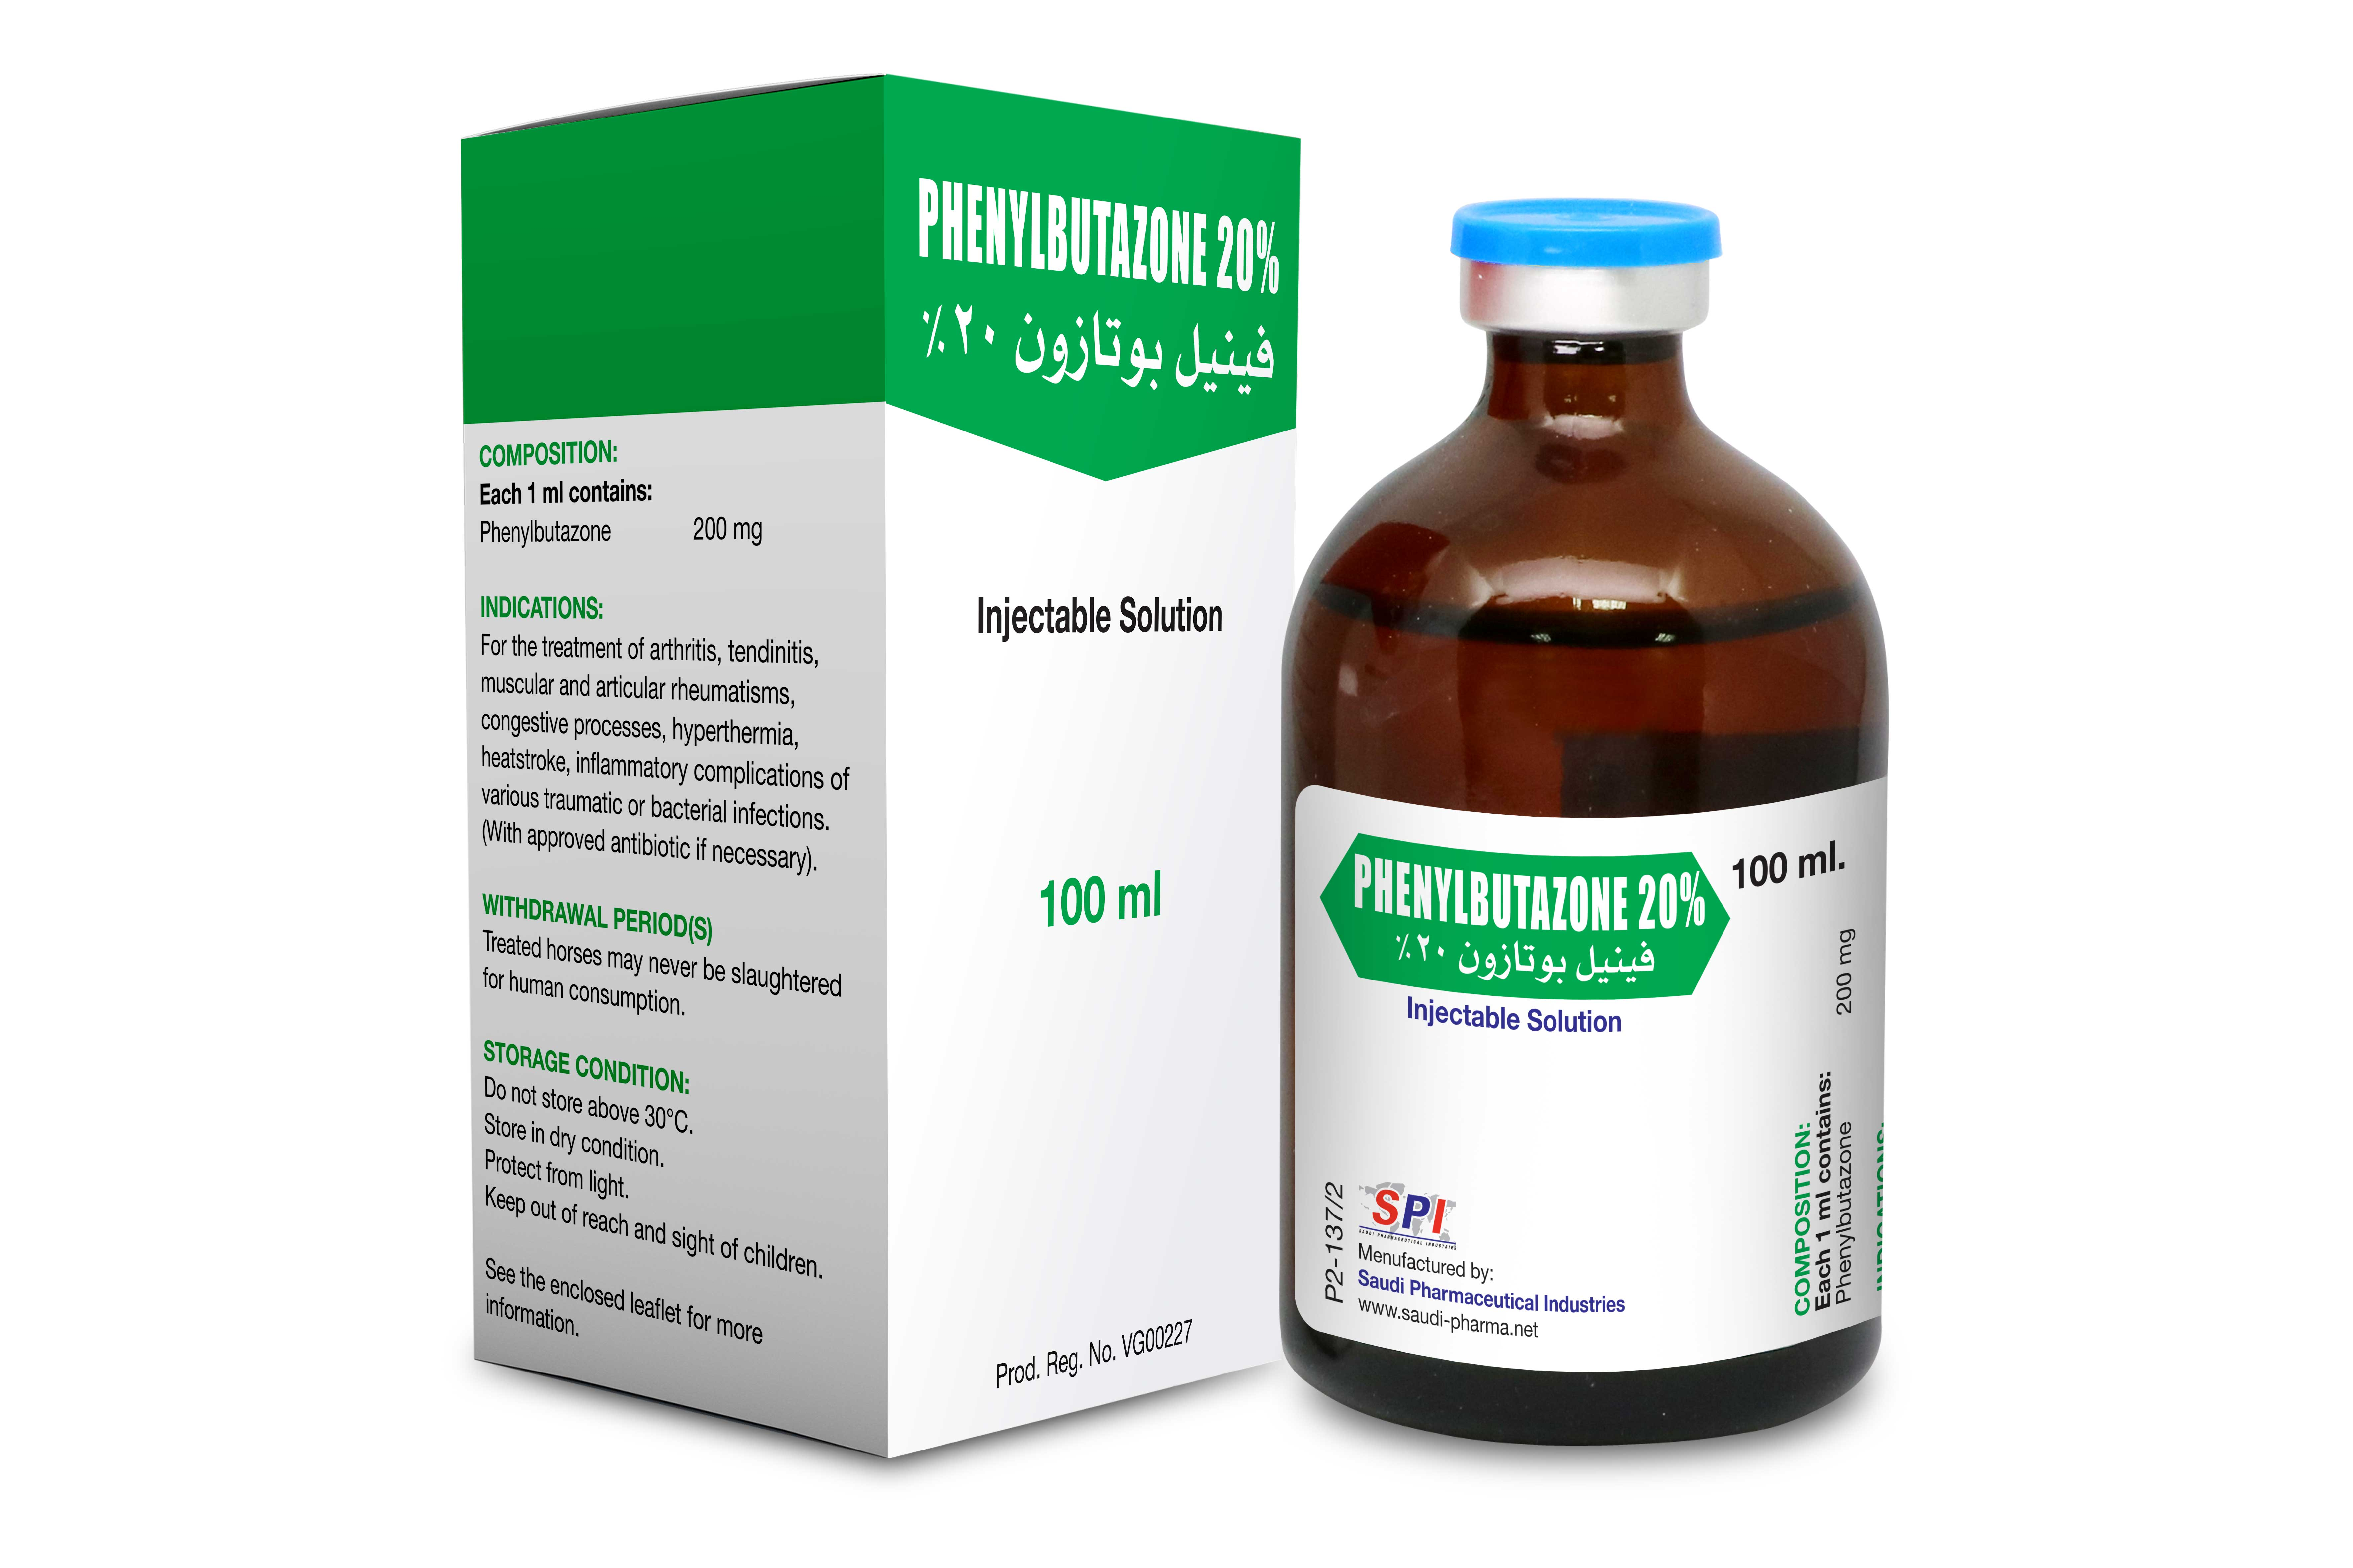 PHENYLBUTAZONE 20% 100 ml